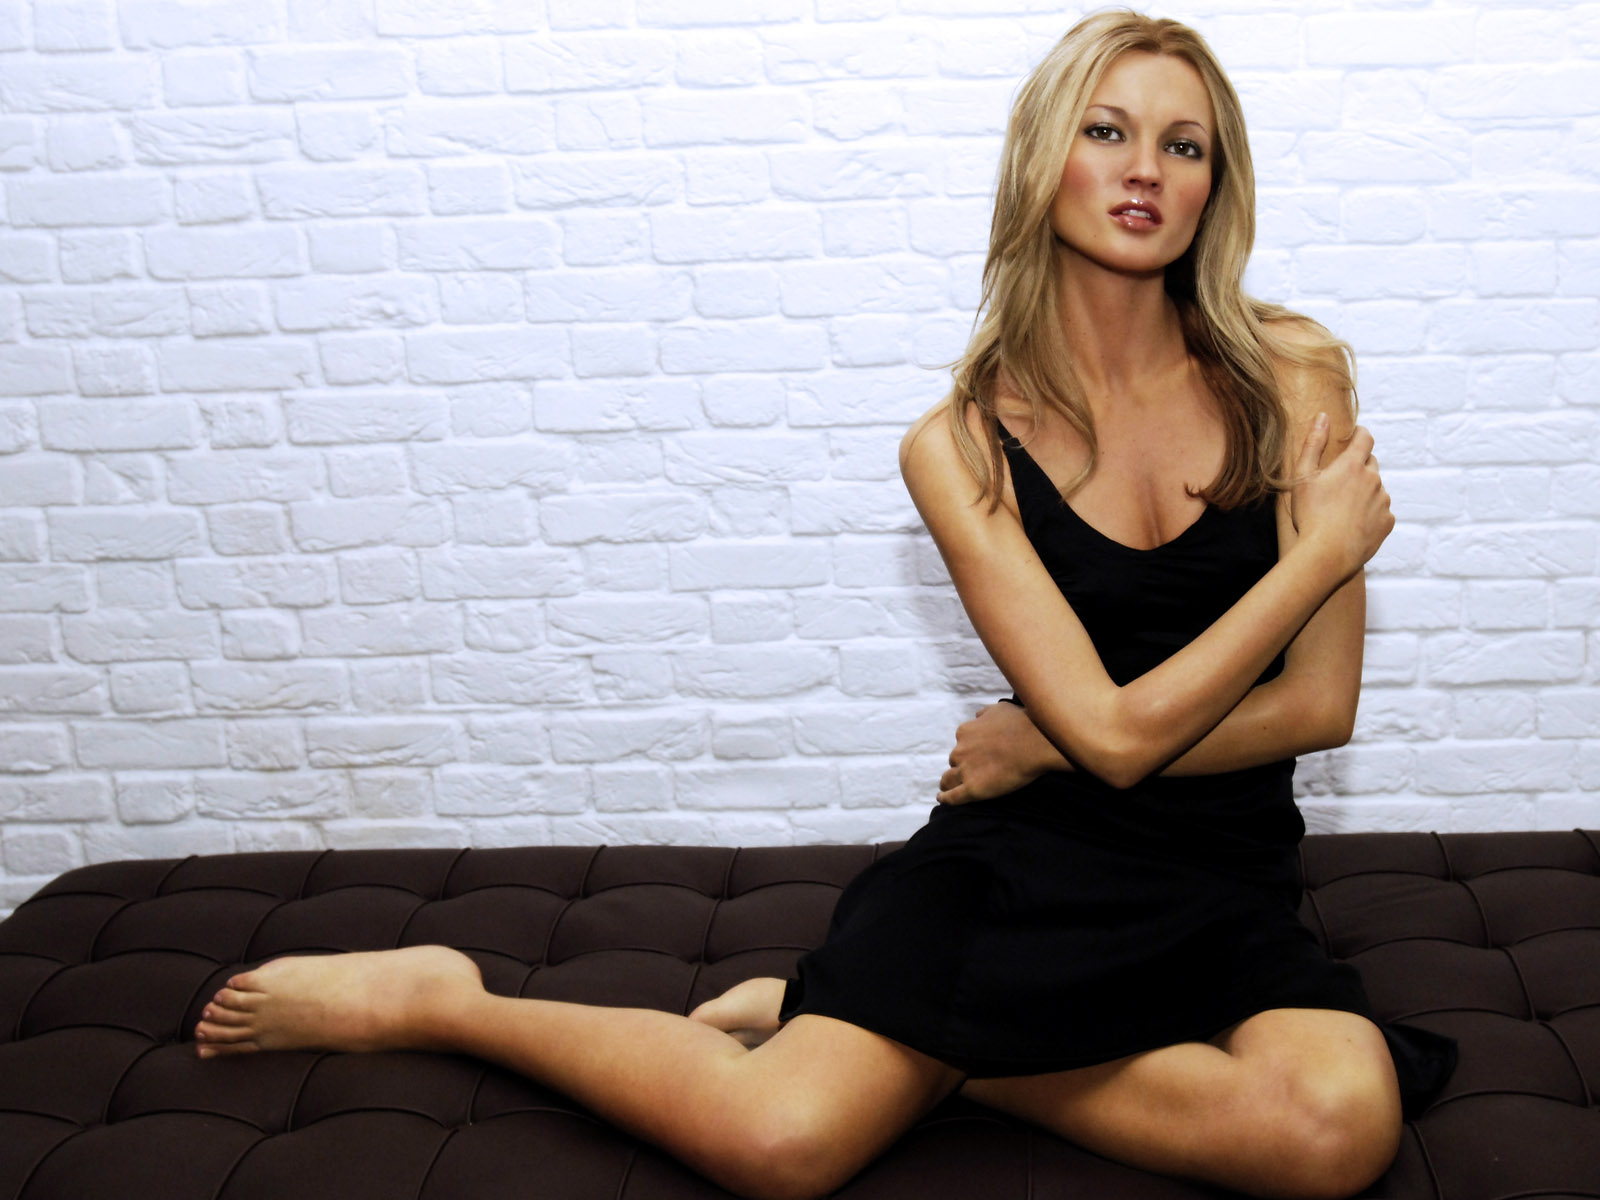 1600x1200 - Kate Moss Wallpapers 19